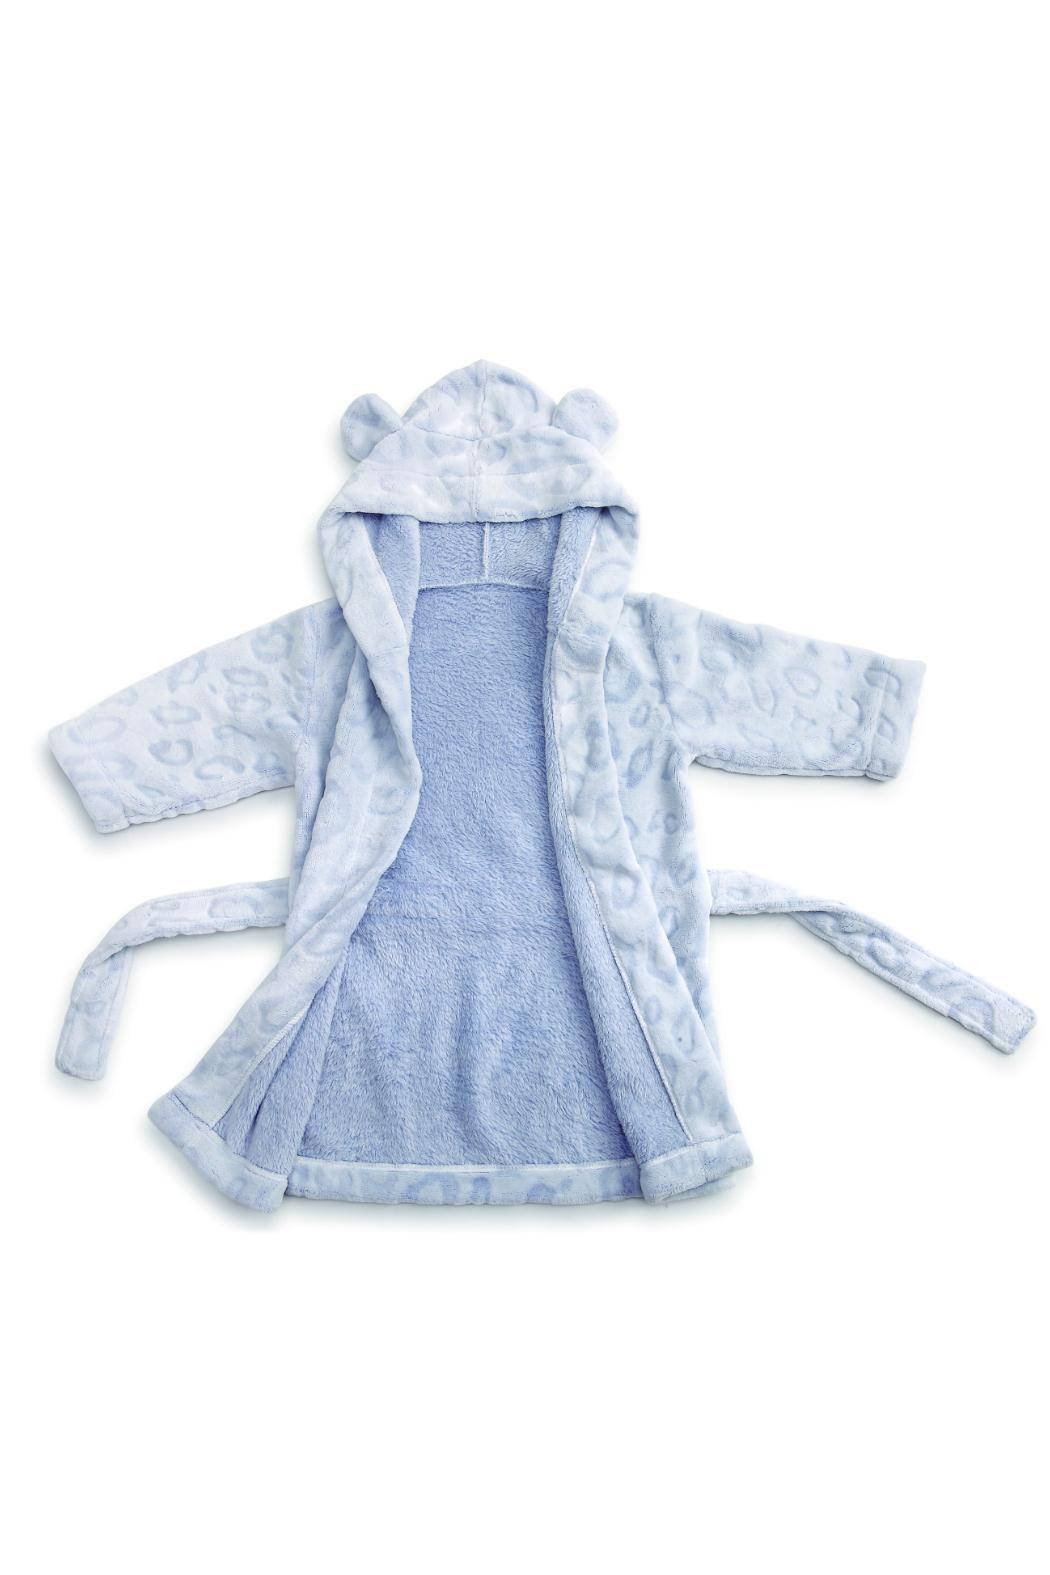 DEMDACO Comfort-Of-Plush Baby Robe - Main Image